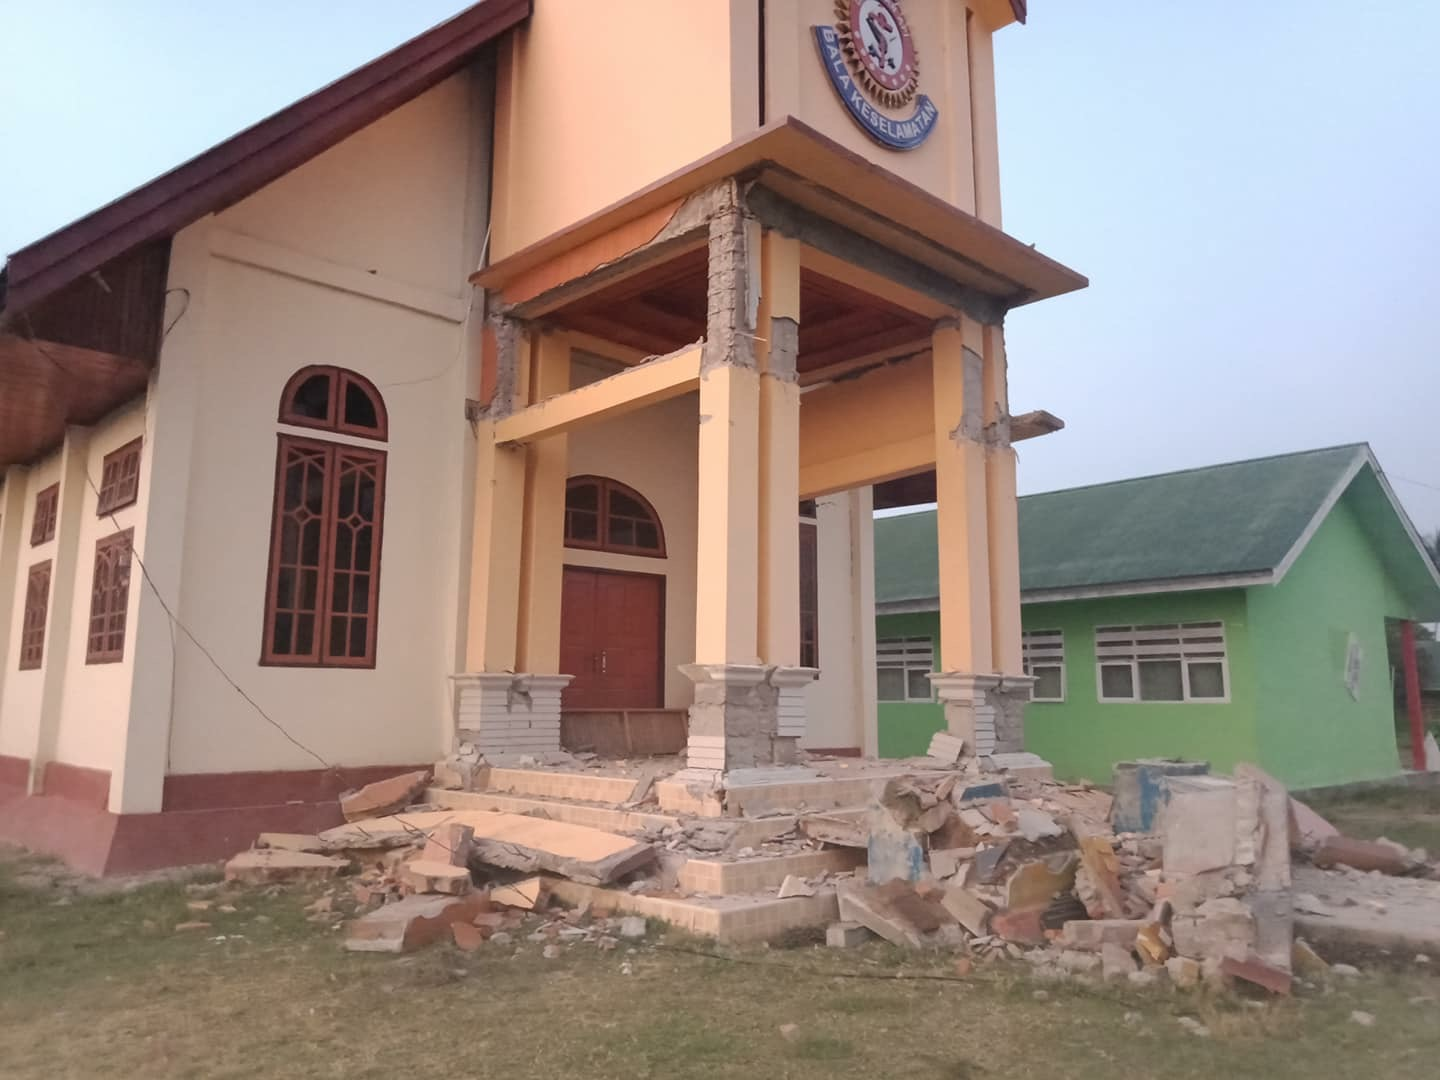 Salvation Army corps building in Palu